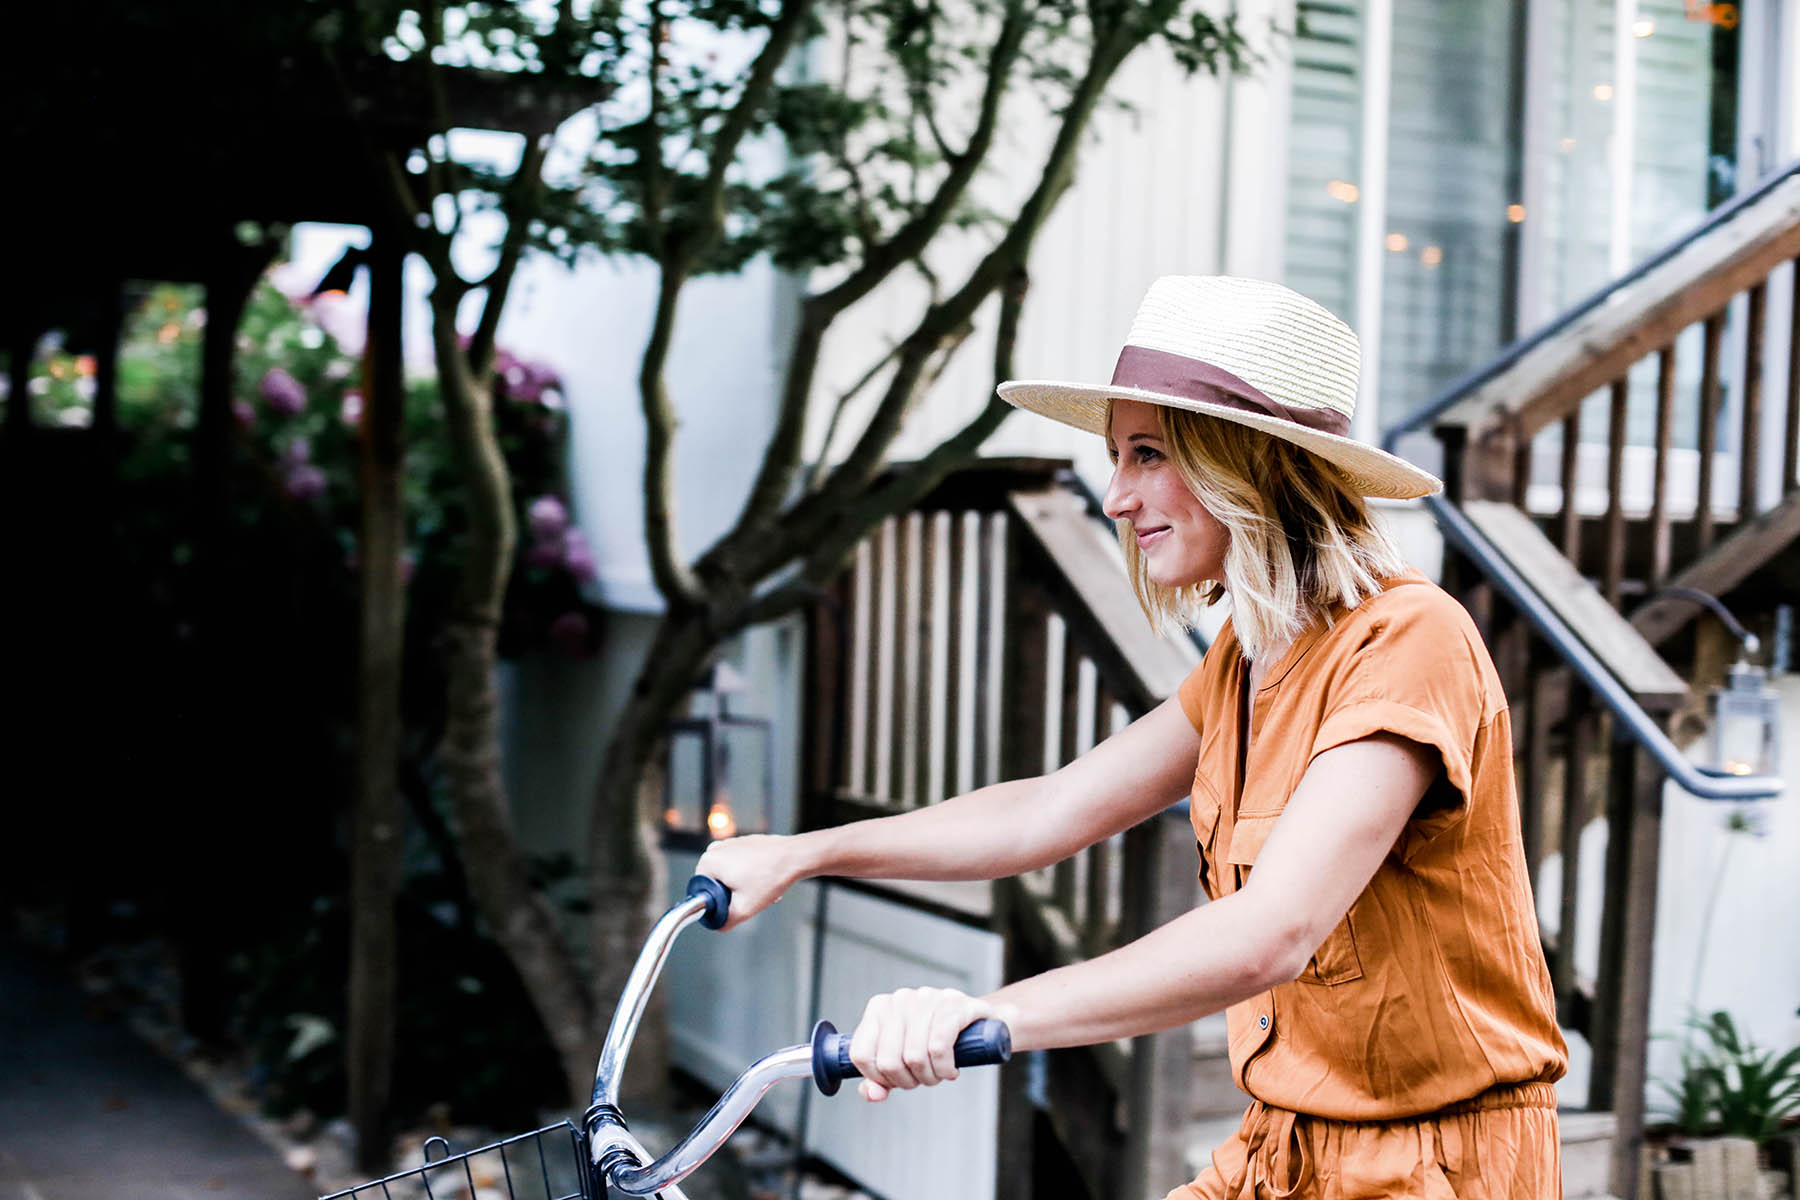 Amanda Holstein riding bikes in Old Navy romper and woven fedora hat